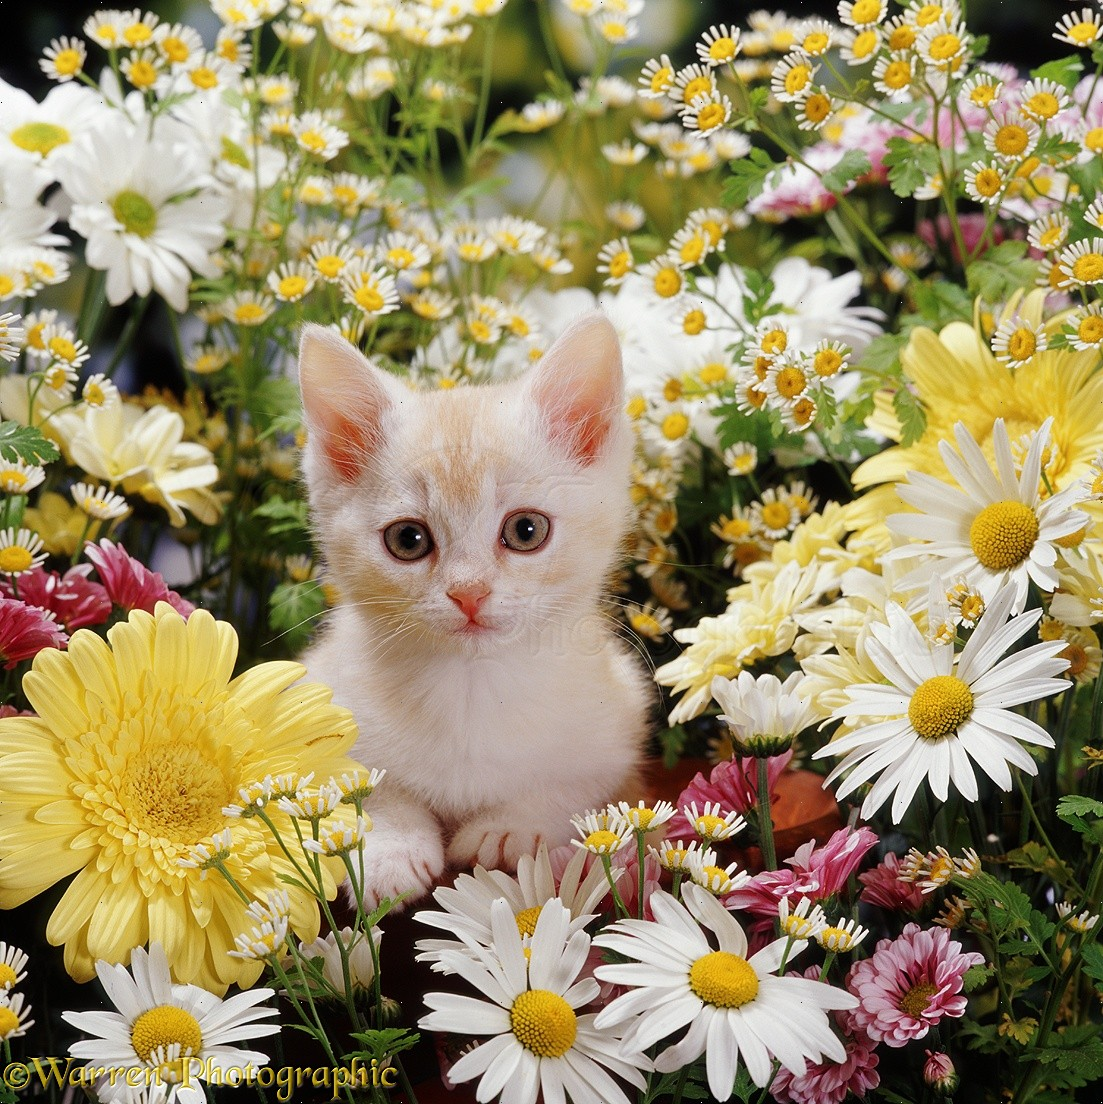 Yorkshirerose Images Cute Kittens With Flowers Hd Wallpaper And